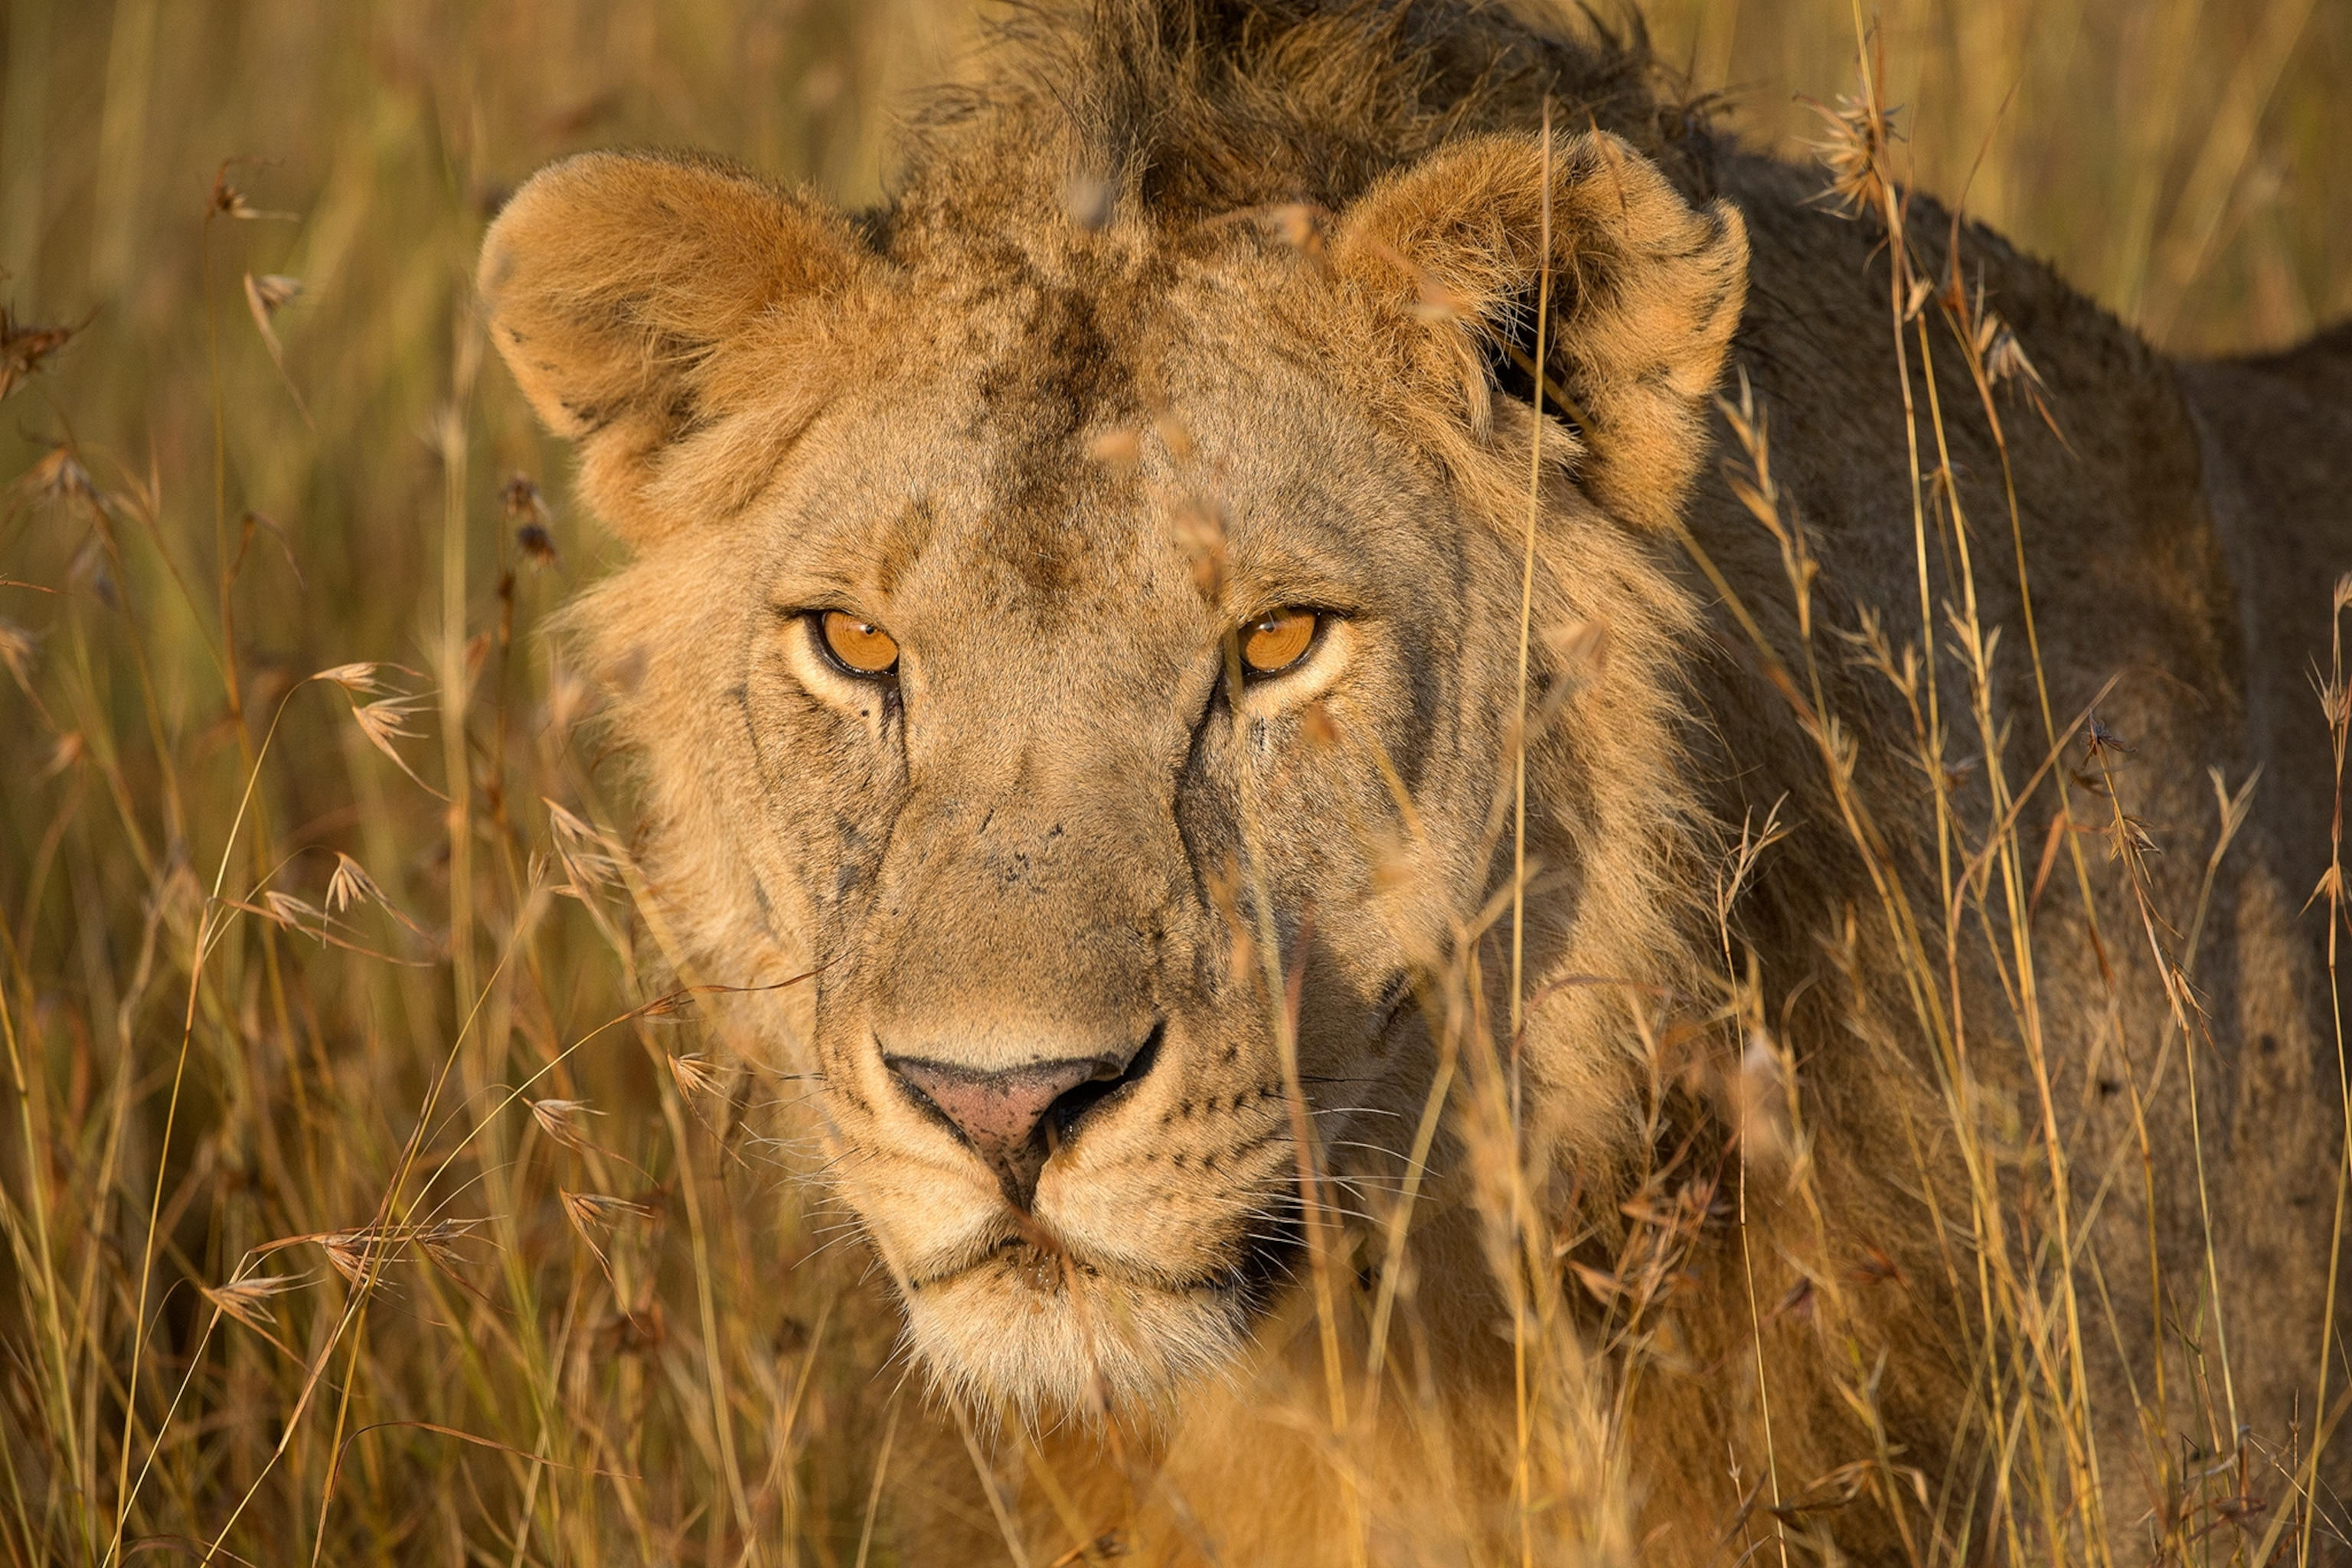 A closer look at lion evolution offers hope for saving the big cats